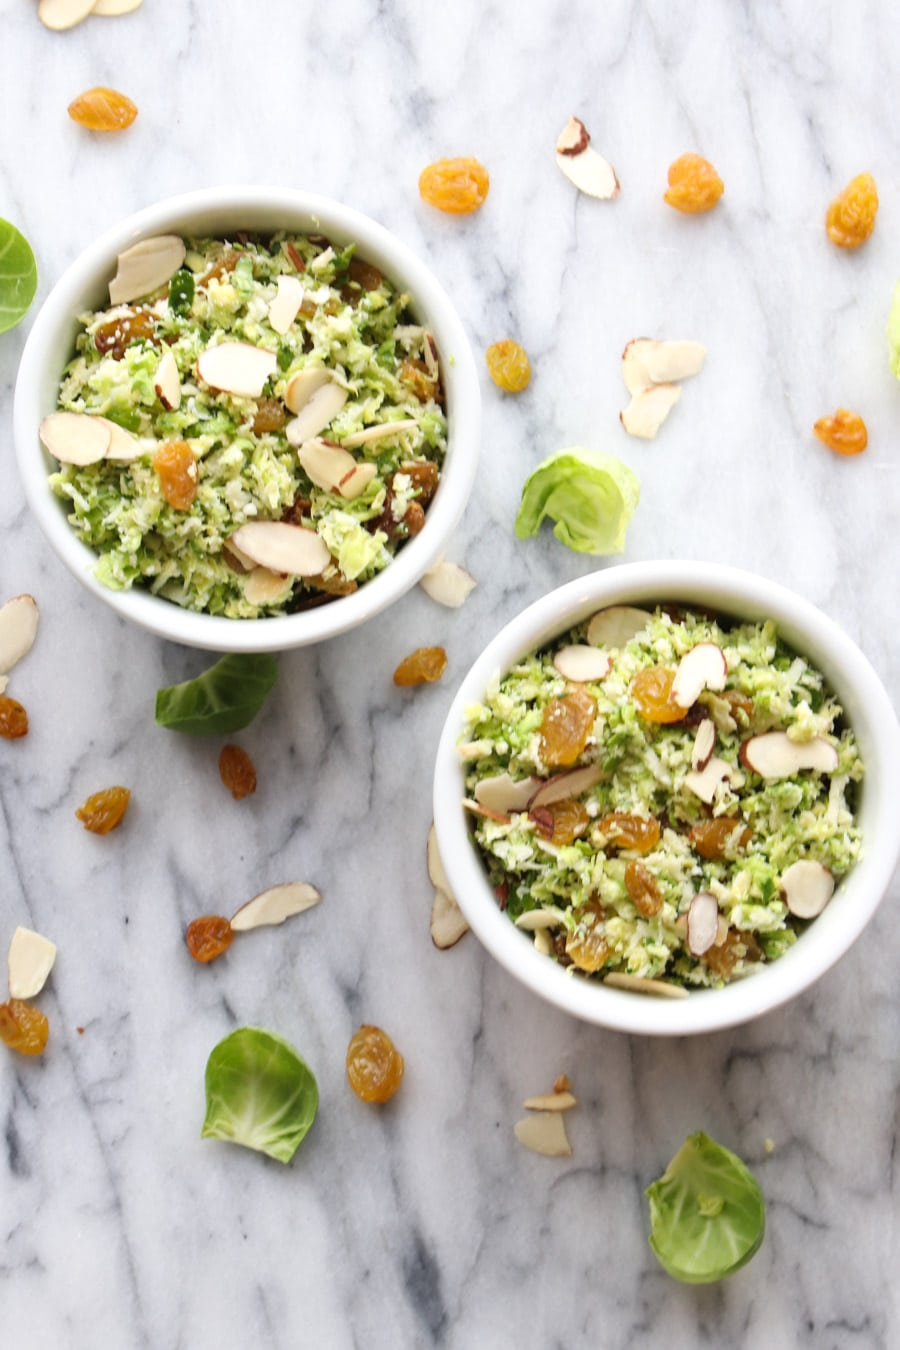 Two bowls of brussels sprouts salad